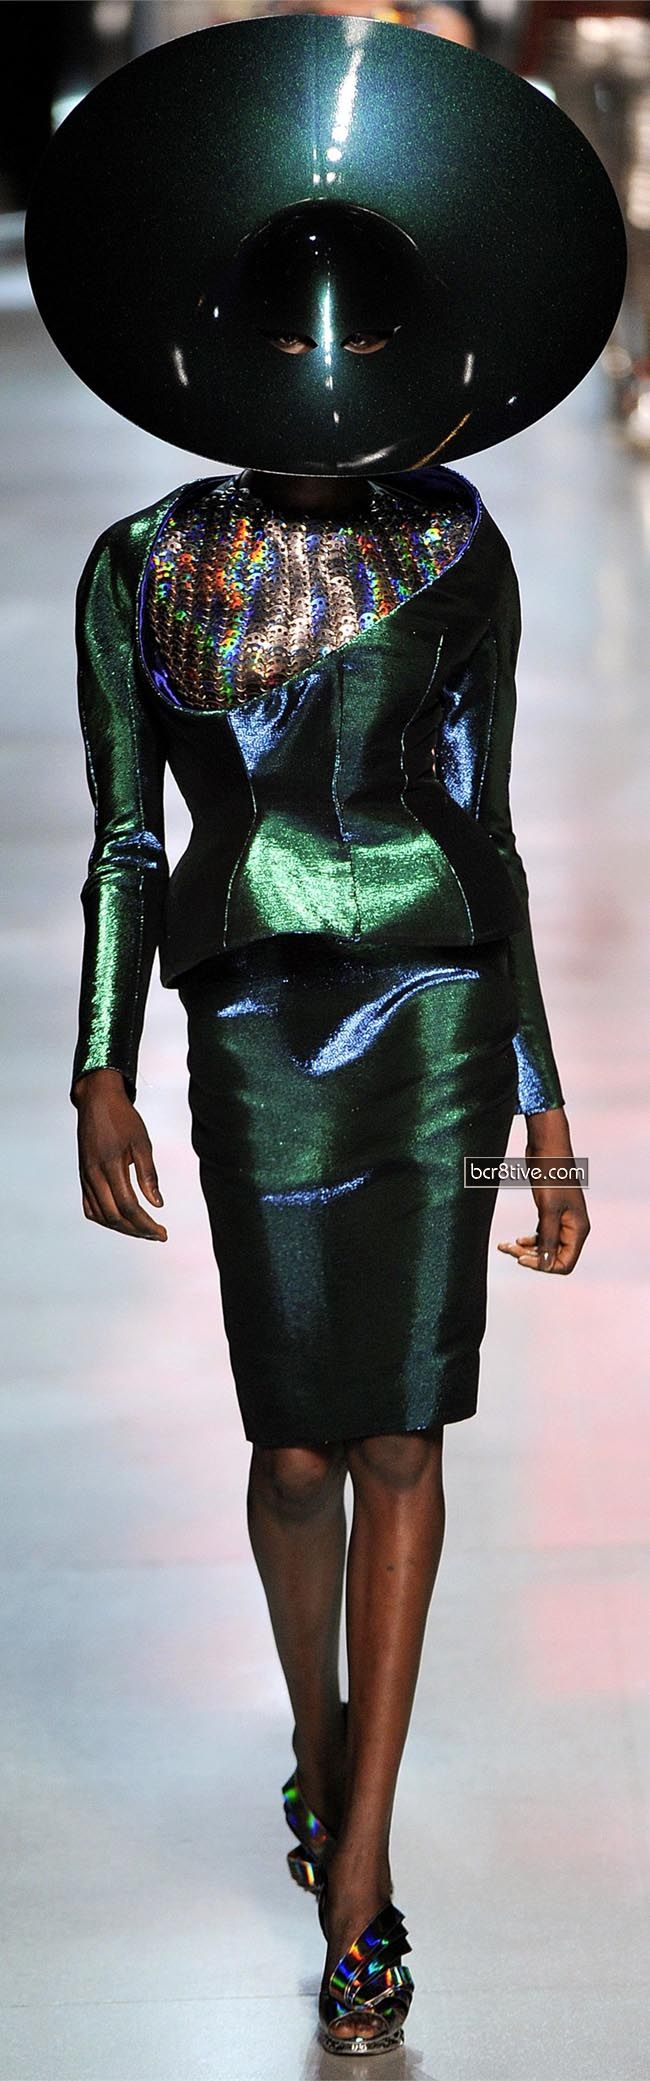 Manish Arora for Paco Rabanne SS 2012 On the plus side - I imagine her  head gets pretty good reception!  ;-)